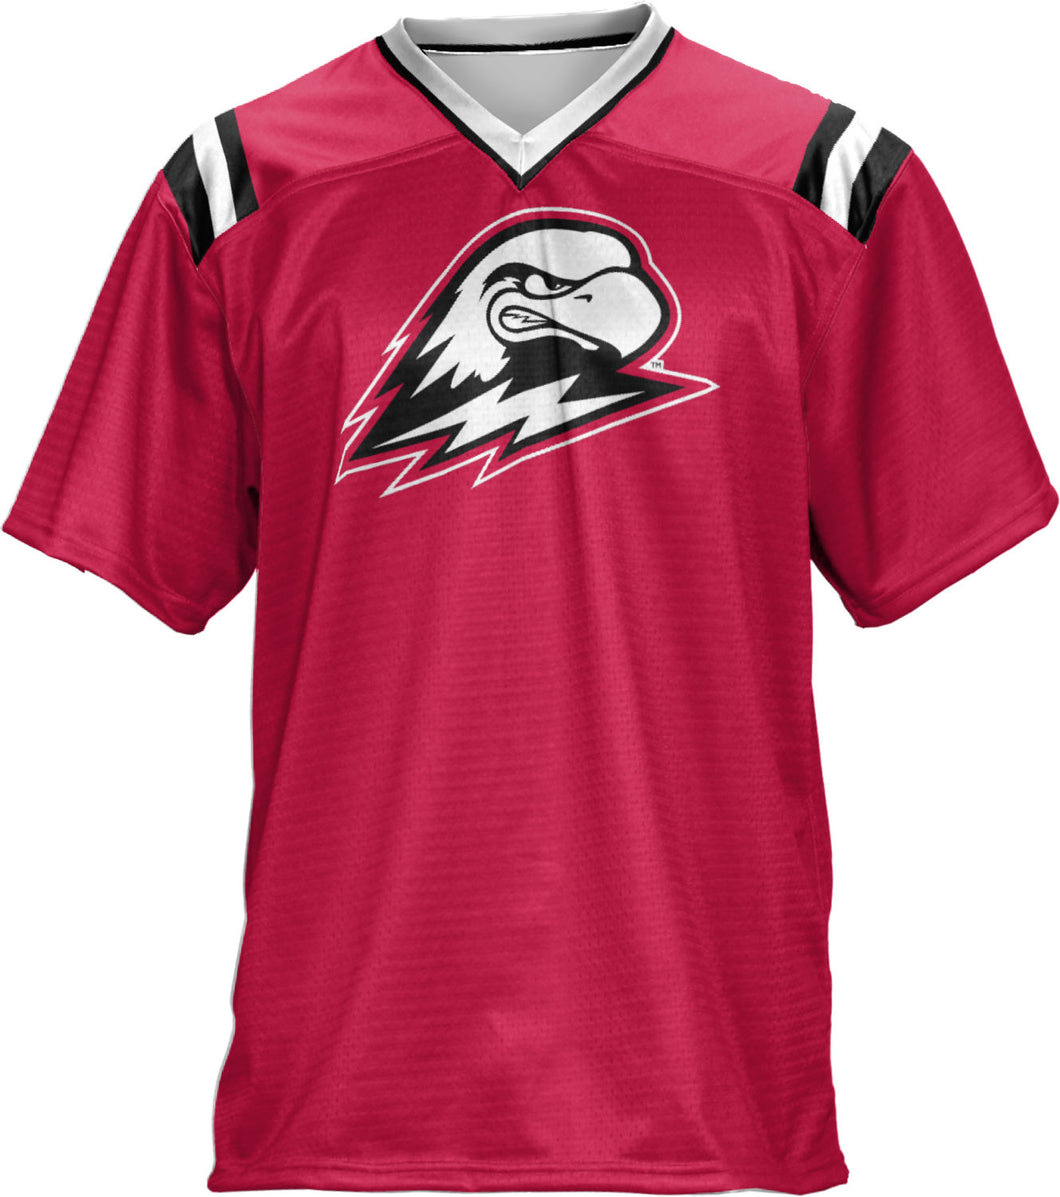 Southern Utah University: Boys' Football Fan Jersey - Goal Line